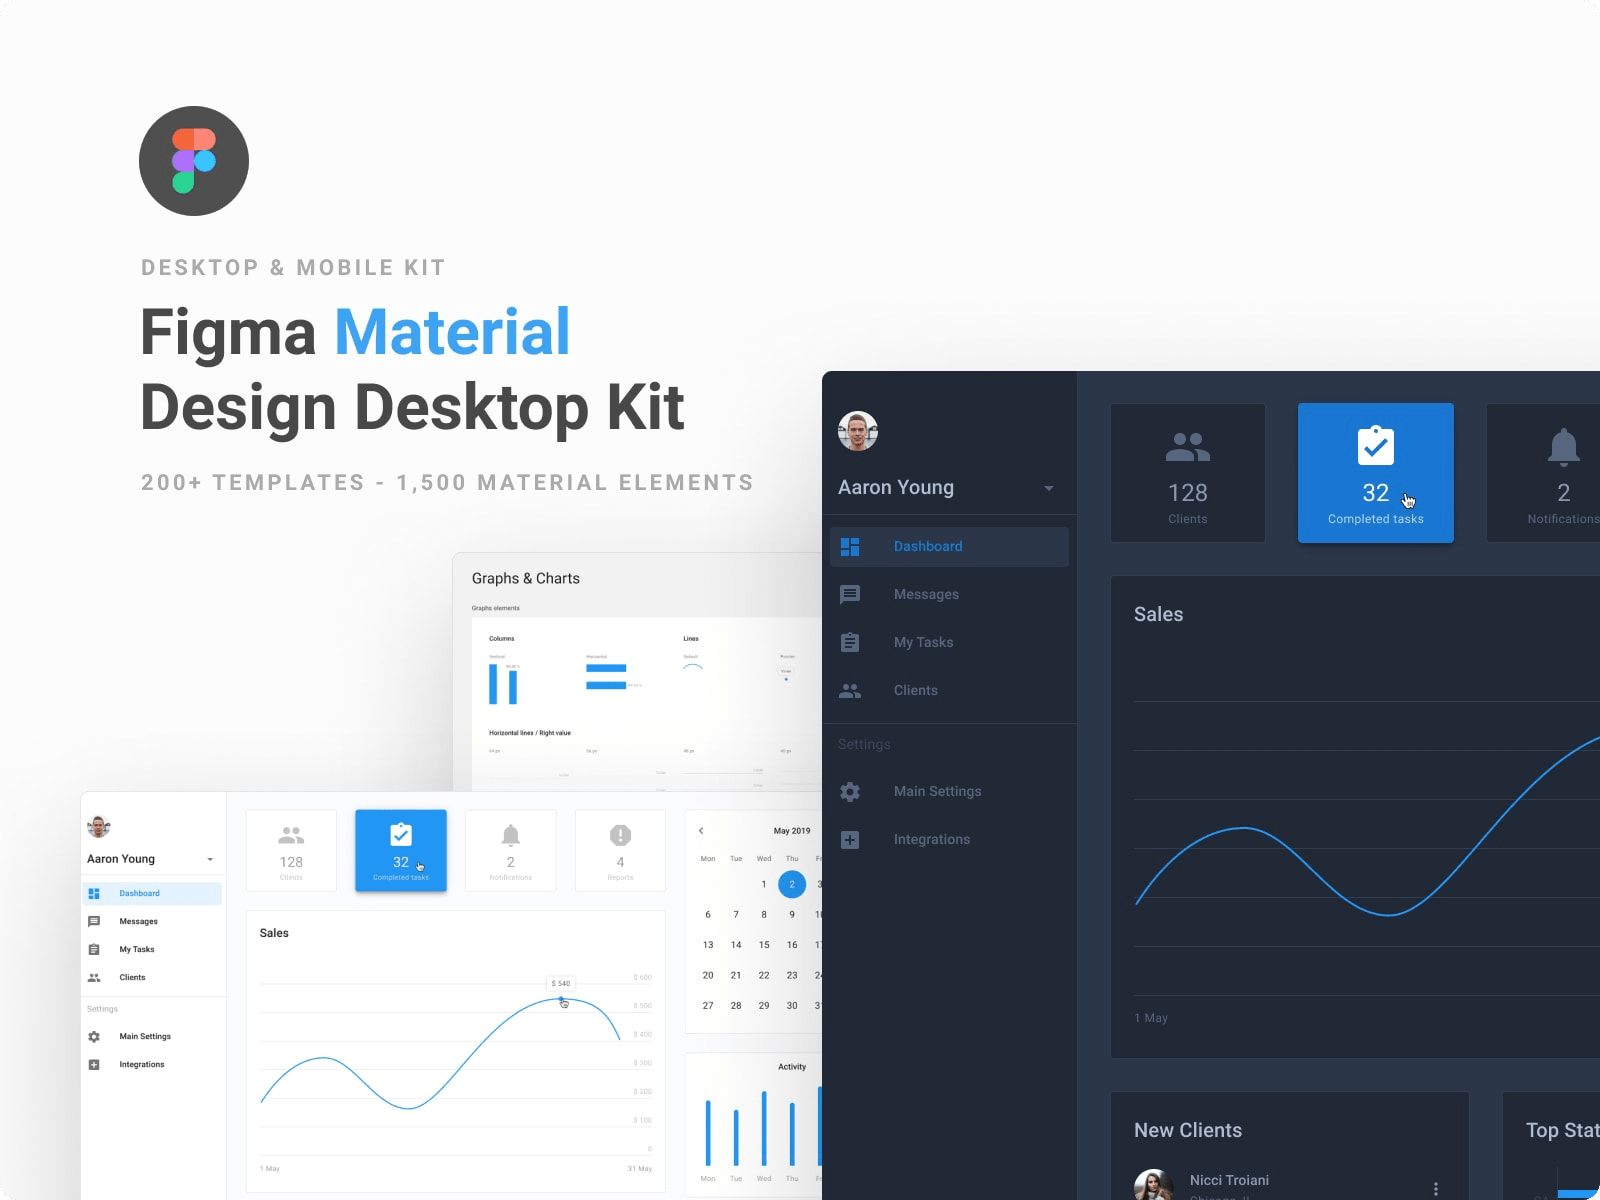 Figma Material Design UI Kit: Speed Up Your Workflow